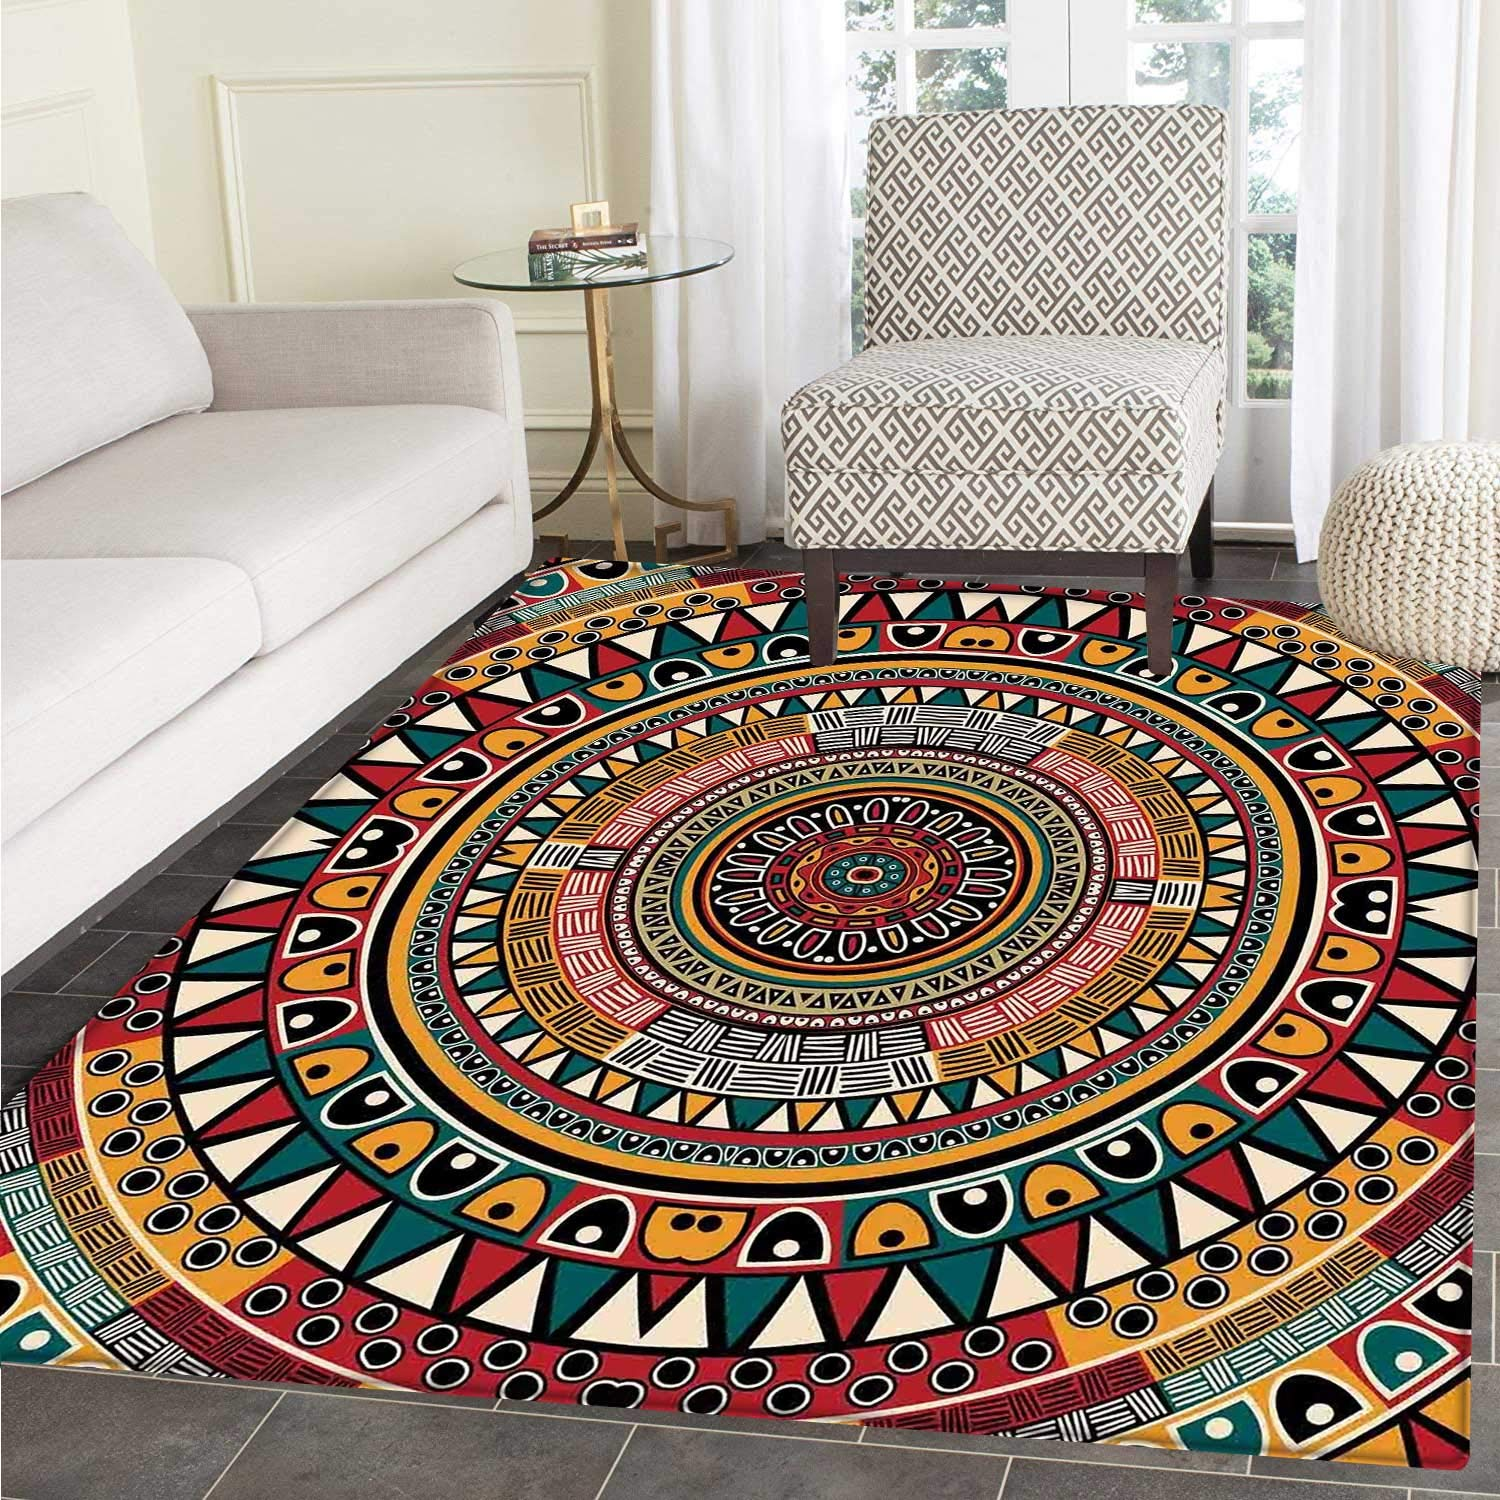 Tribal small rug Carpet African Folkloric Tribe Round Pattern with Ethnic Colors Aztec Artwork door mat indoors Bathroom Mats Non Slip 2